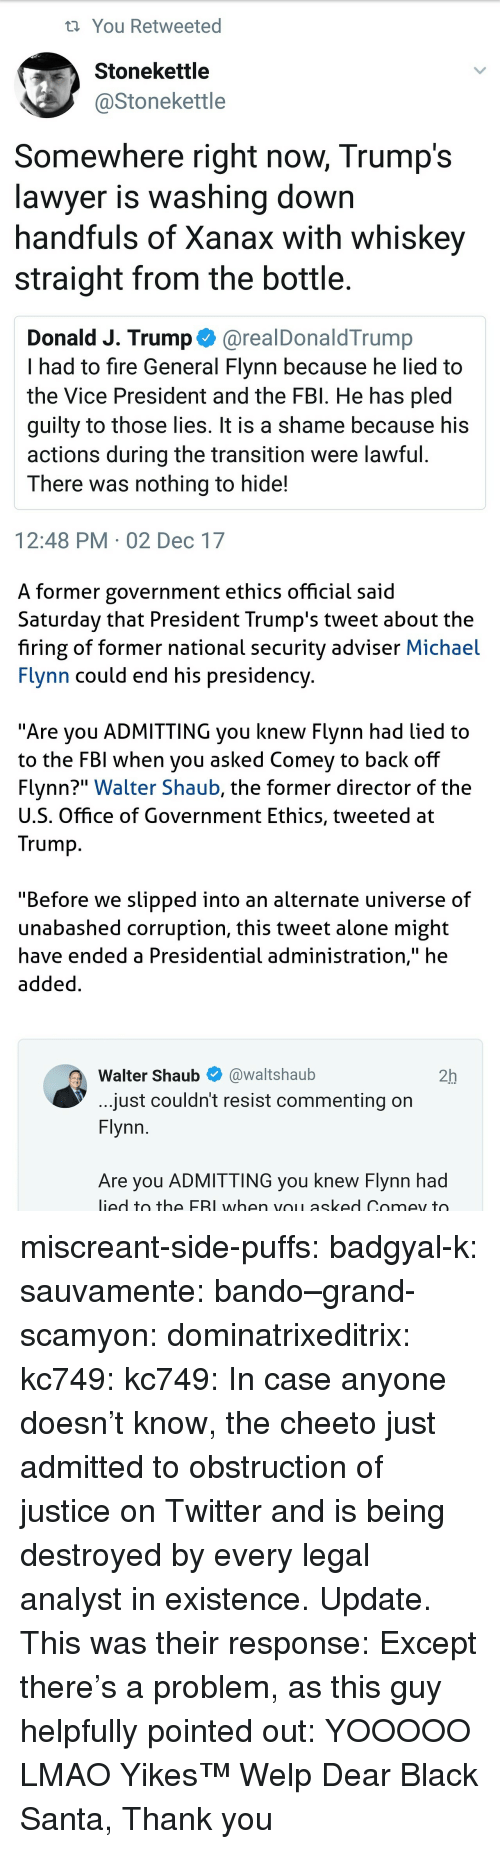 "bando: t You Retweeted  Stonekettle  @Stonekettle  Somewhere right now, Trump's  lawver is washina down  handfuls of Xanax with whiskey  straight from the bottle.  Donald J. Trump @realDonaldTrump  I had to fire General Flynn because he lied to  the Vice President and the FBl. He has pled  quilty to those lies. It is a shame because his  actions during the transition were lawful  There was nothing to hide!  12:48 PM 02 Dec 17   A former government ethics official said  Saturday that President Trump's tweet about the  firing of former national security adviser Michael  Flynn could end his presidency  ""Are you ADMITTING you knew Flynn had lied to  to the FBI when you asked Comev to back off  Flynn?"" Walter Shaub, the former director of the  U.S. Office of Government Ethics, tweeted at  Trump  ""Before we slipped into an alternate universe of  unabashed corruption, this tweet alone might  have ended a Presidential administration,"" he  added  Walter Shaub@waltshaub  2h  just couldn't resist commenting on  Flynn  Are you ADMITTING you knew Flynn had  ied to the FBI when voL asked Comey to miscreant-side-puffs:  badgyal-k:  sauvamente:   bando–grand-scamyon:   dominatrixeditrix:  kc749:  kc749:  In case anyone doesn't know, the cheeto just admitted to obstruction of justice on Twitter and is being destroyed by every legal analyst in existence.  Update. This was their response:  Except there's a problem, as this guy helpfully pointed out:    YOOOOO LMAO   Yikes™   Welp    Dear Black Santa, Thank you"